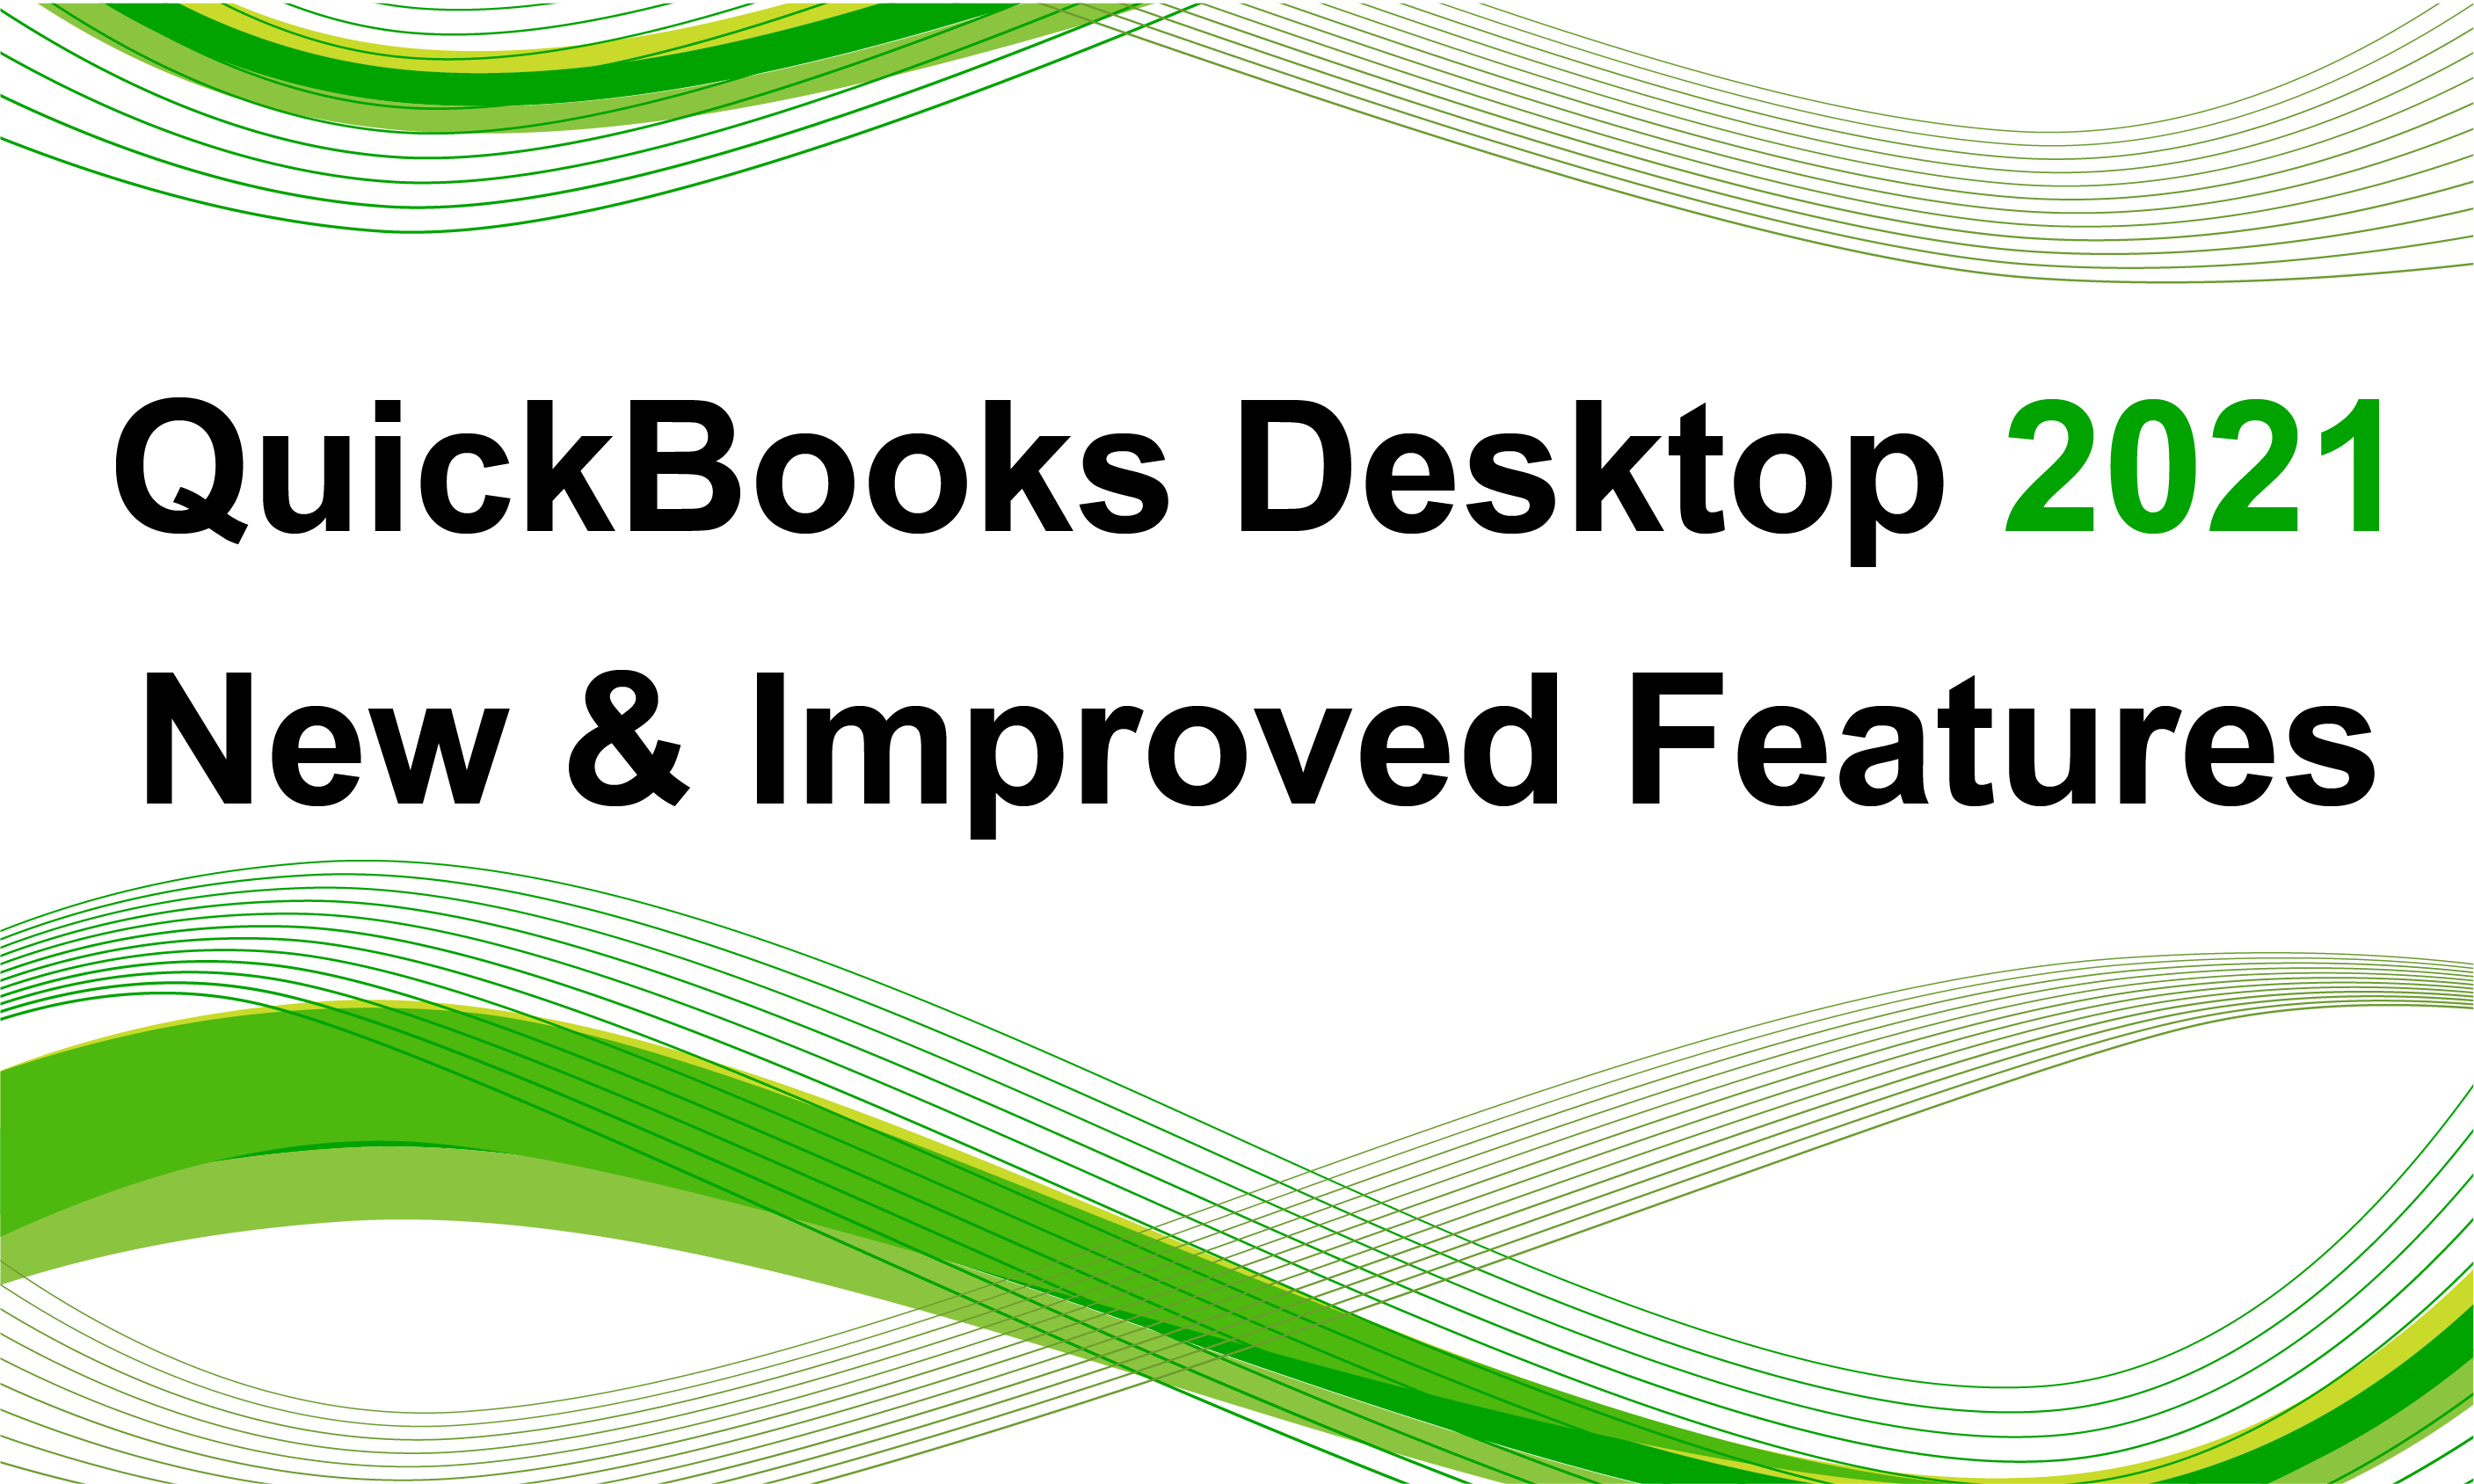 QuickBooks Desktop 2021 New Features